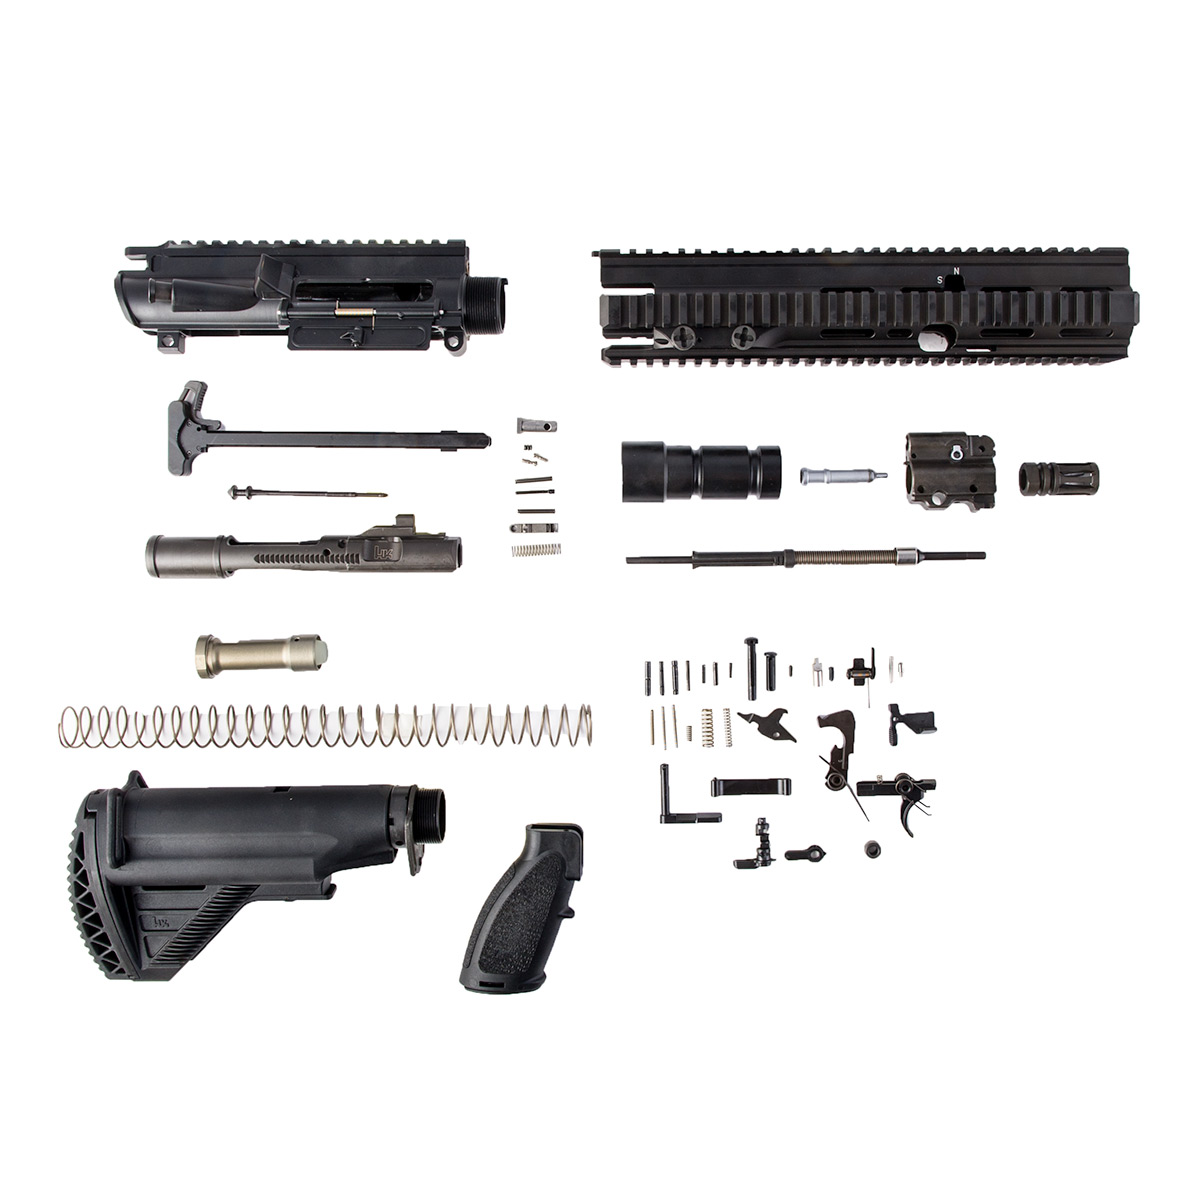 Brownell S Hk416 417 Parts Are Here And Will Be Available